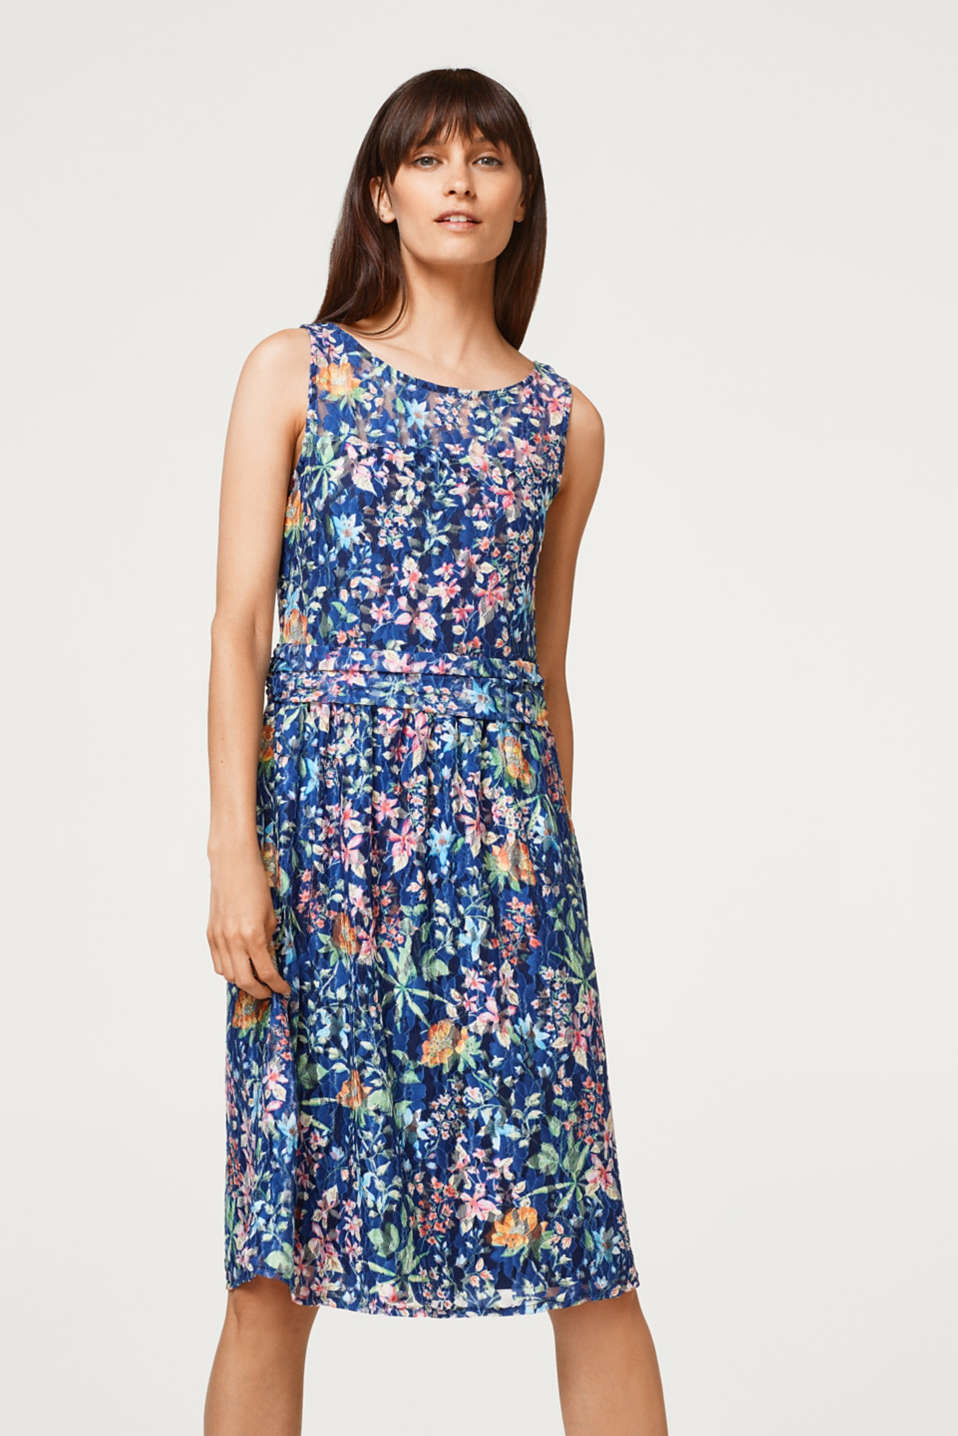 Esprit - Stretch lace dress with a floral print